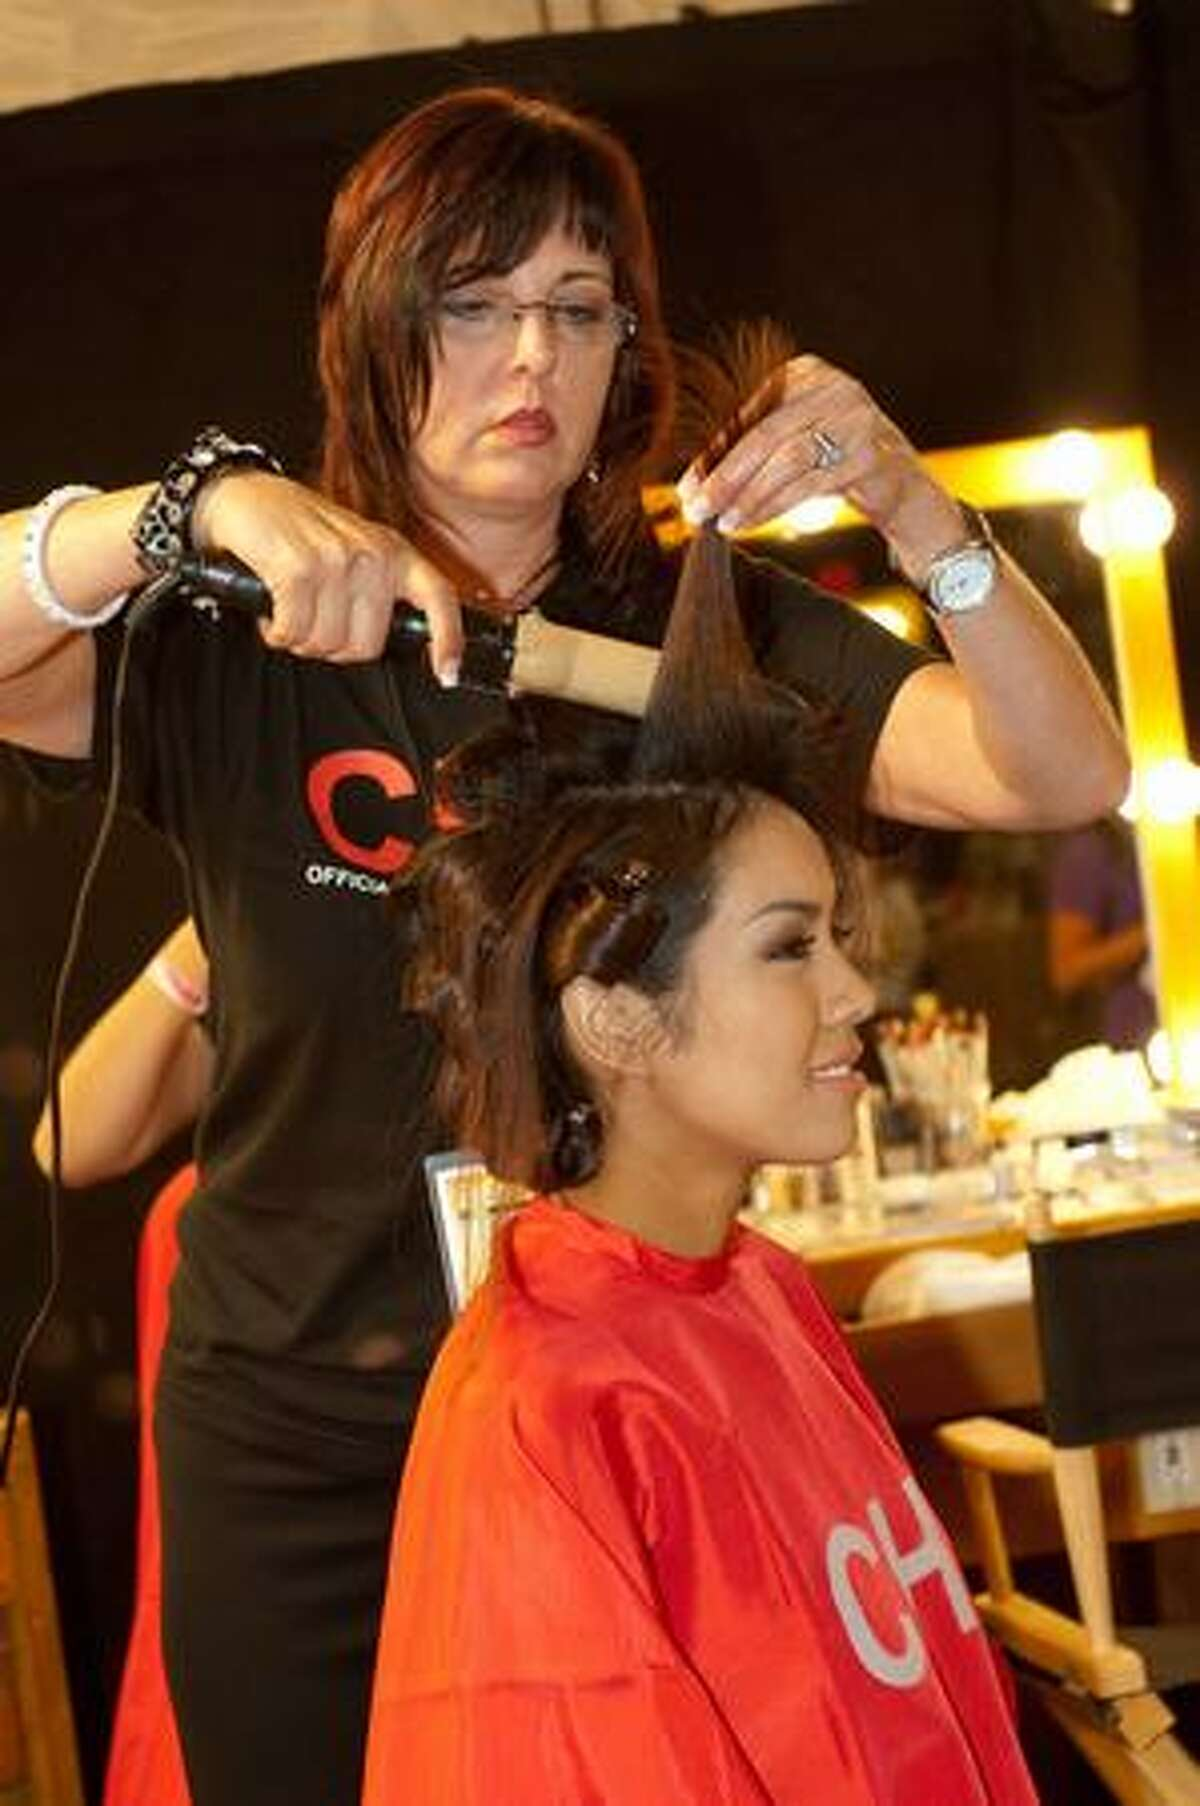 Chutima Durongdej, Miss Thailand, works with hairstylist Angela Leschper as she starts the registration and fitting process.